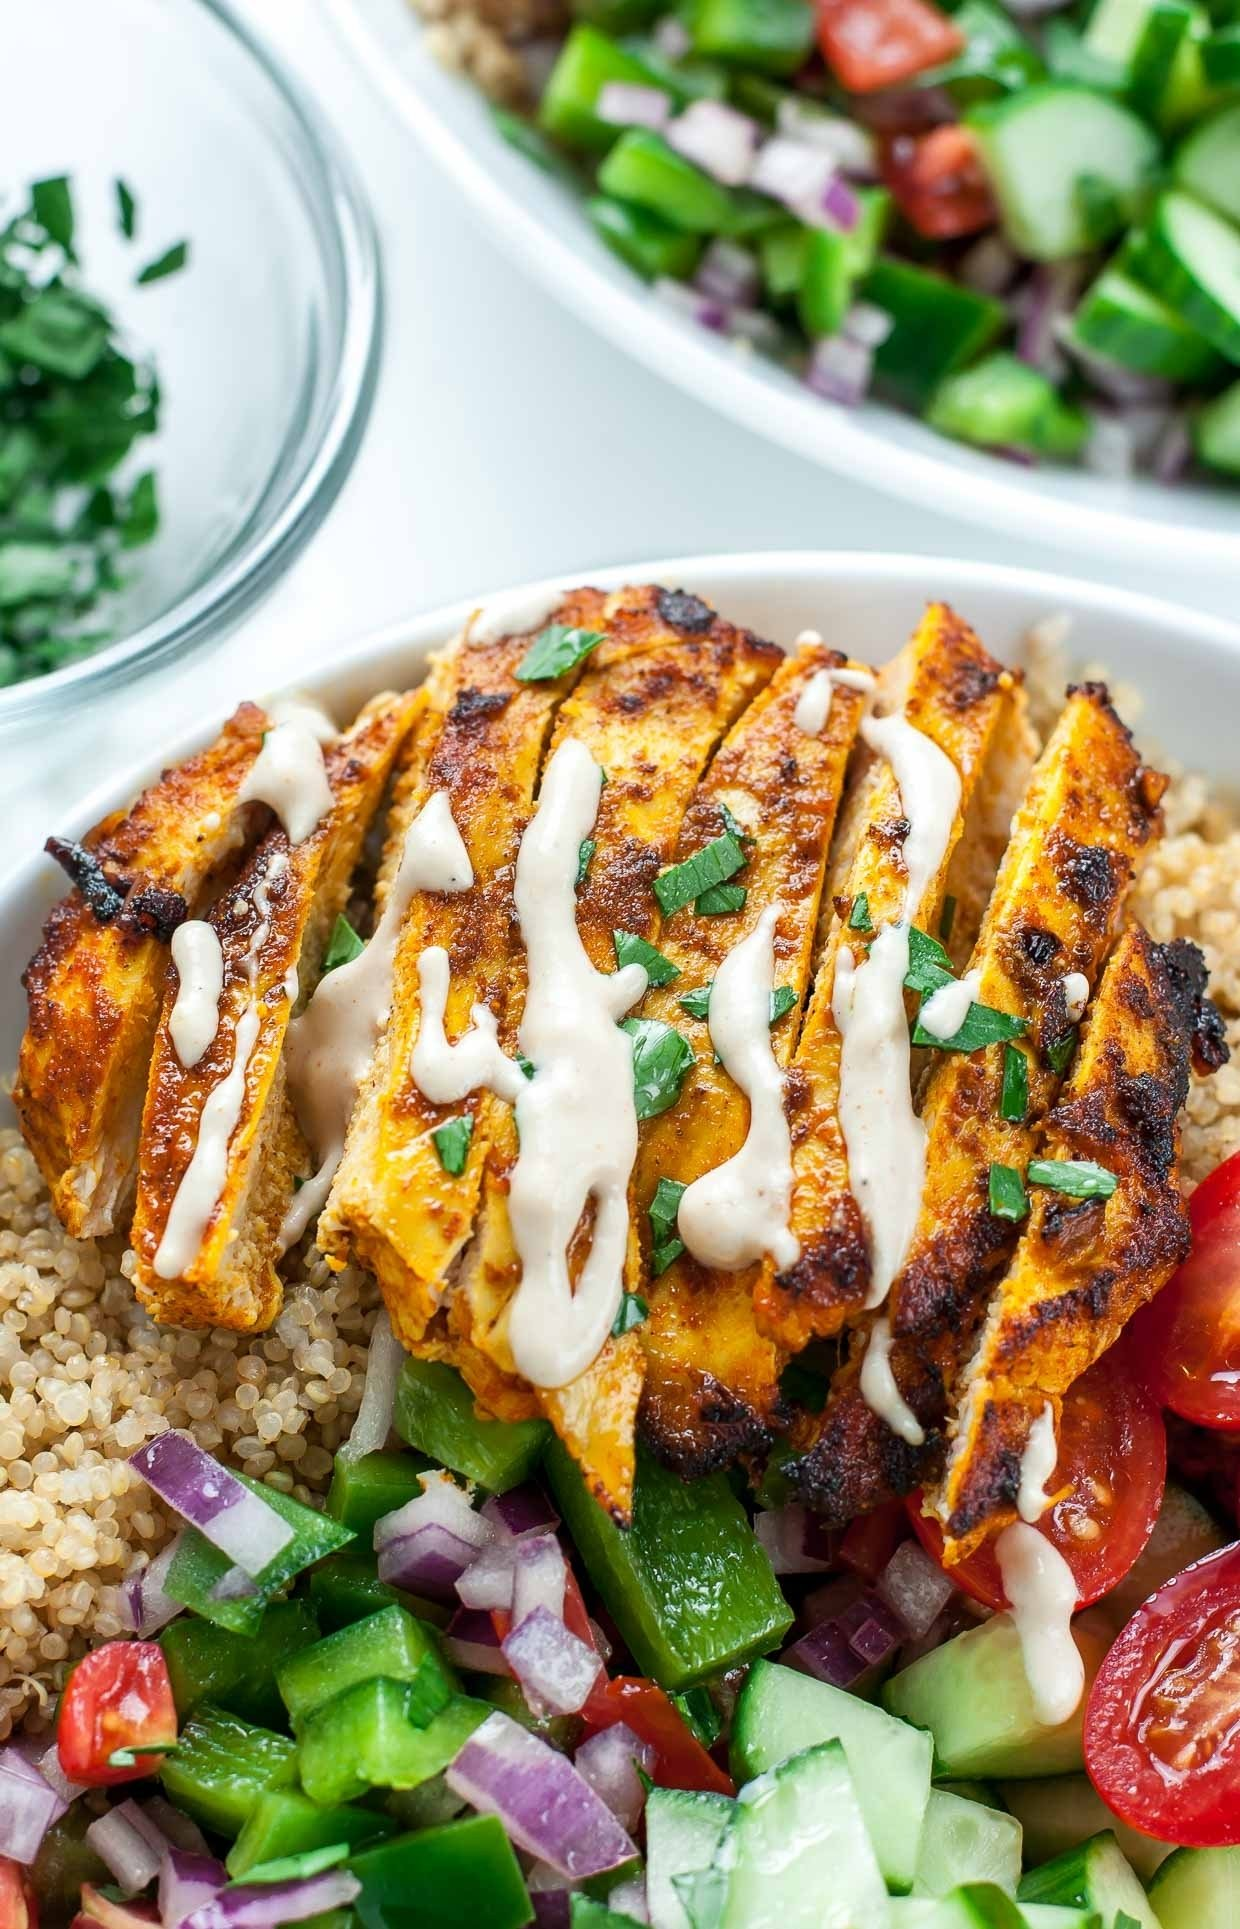 10 Attractive Healthy Dinner Ideas With Chicken healthy chicken shawarma quinoa bowls peas and crayons 1 2020